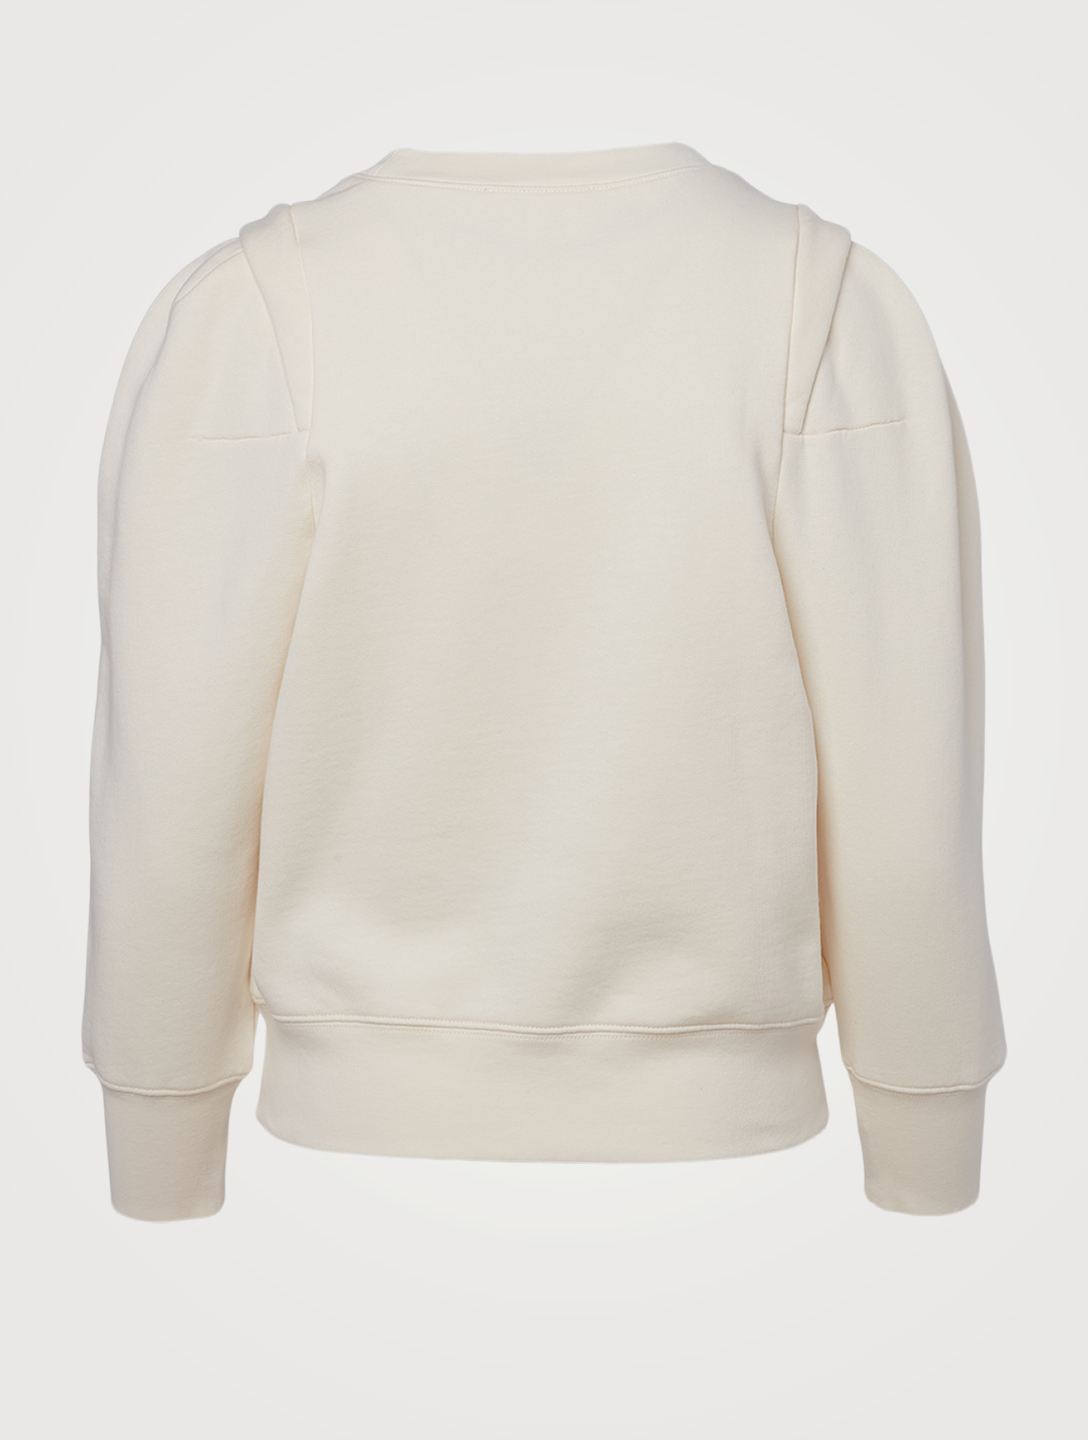 FRAME Pleated Shoulder Sweatshirt Women's White